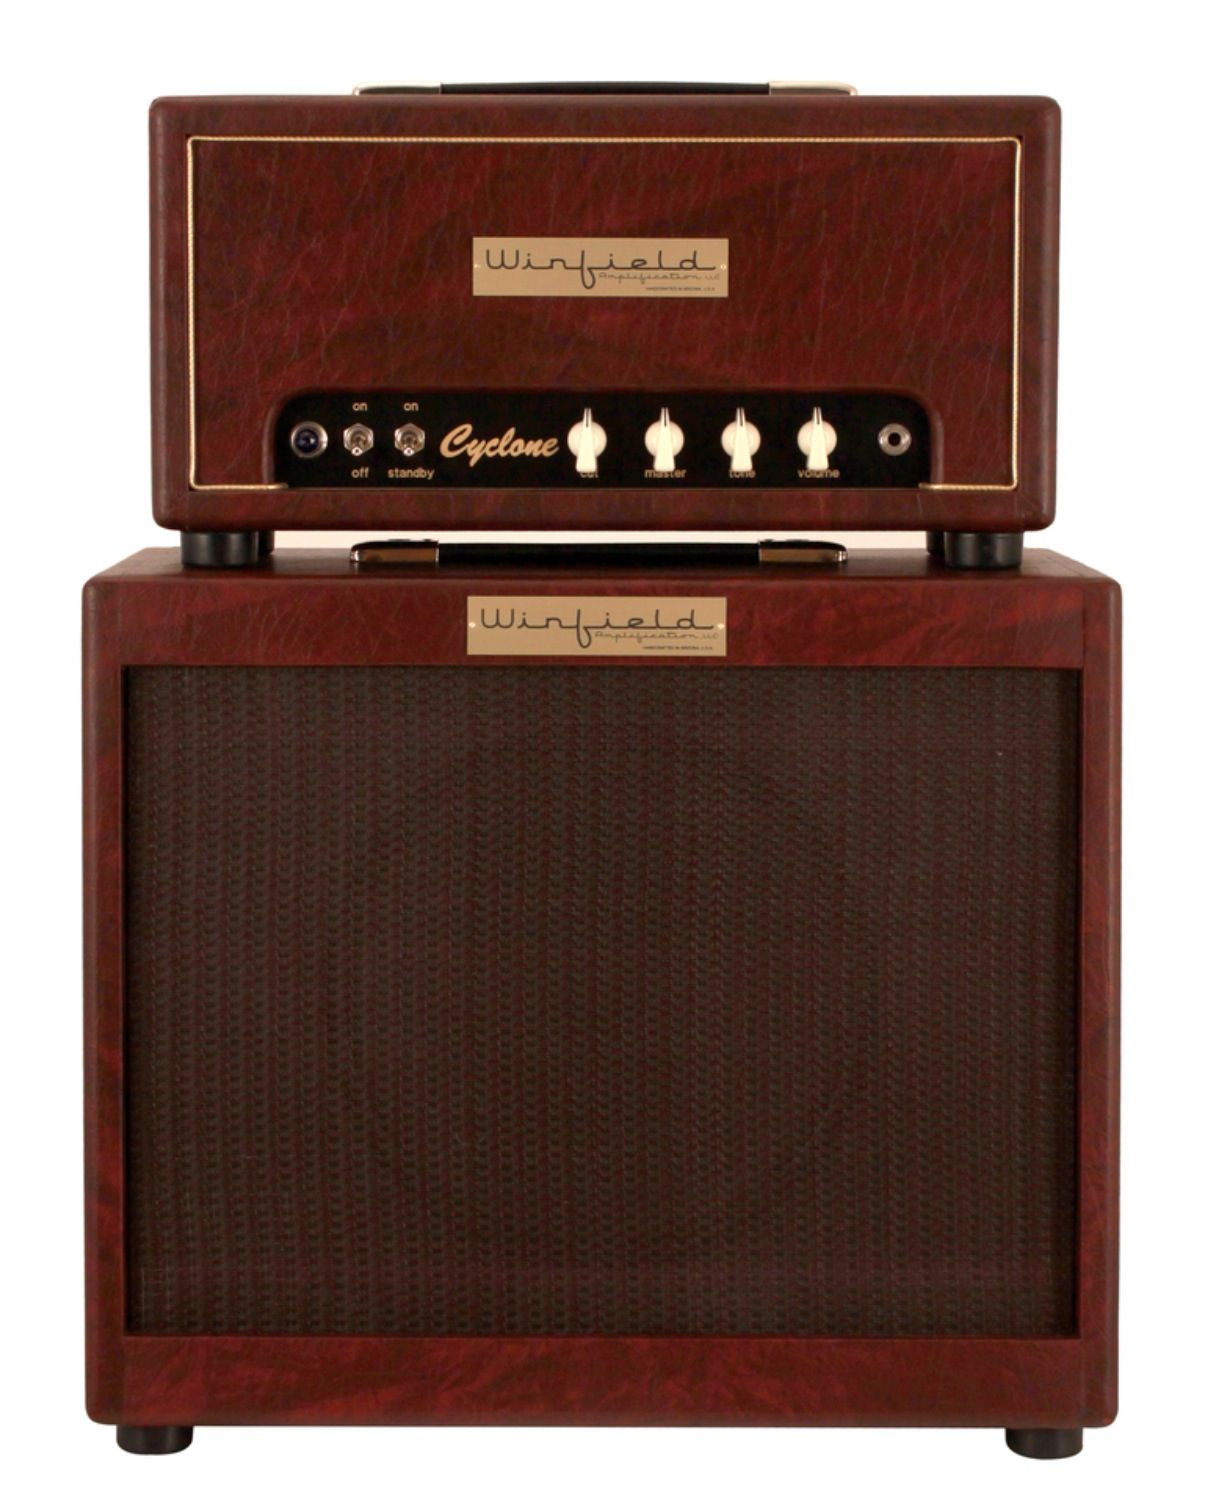 Kustom 1x12 Cabinet Winfield Cyclone Amplifier Head And 1x12 Cabinet Burgundy 15